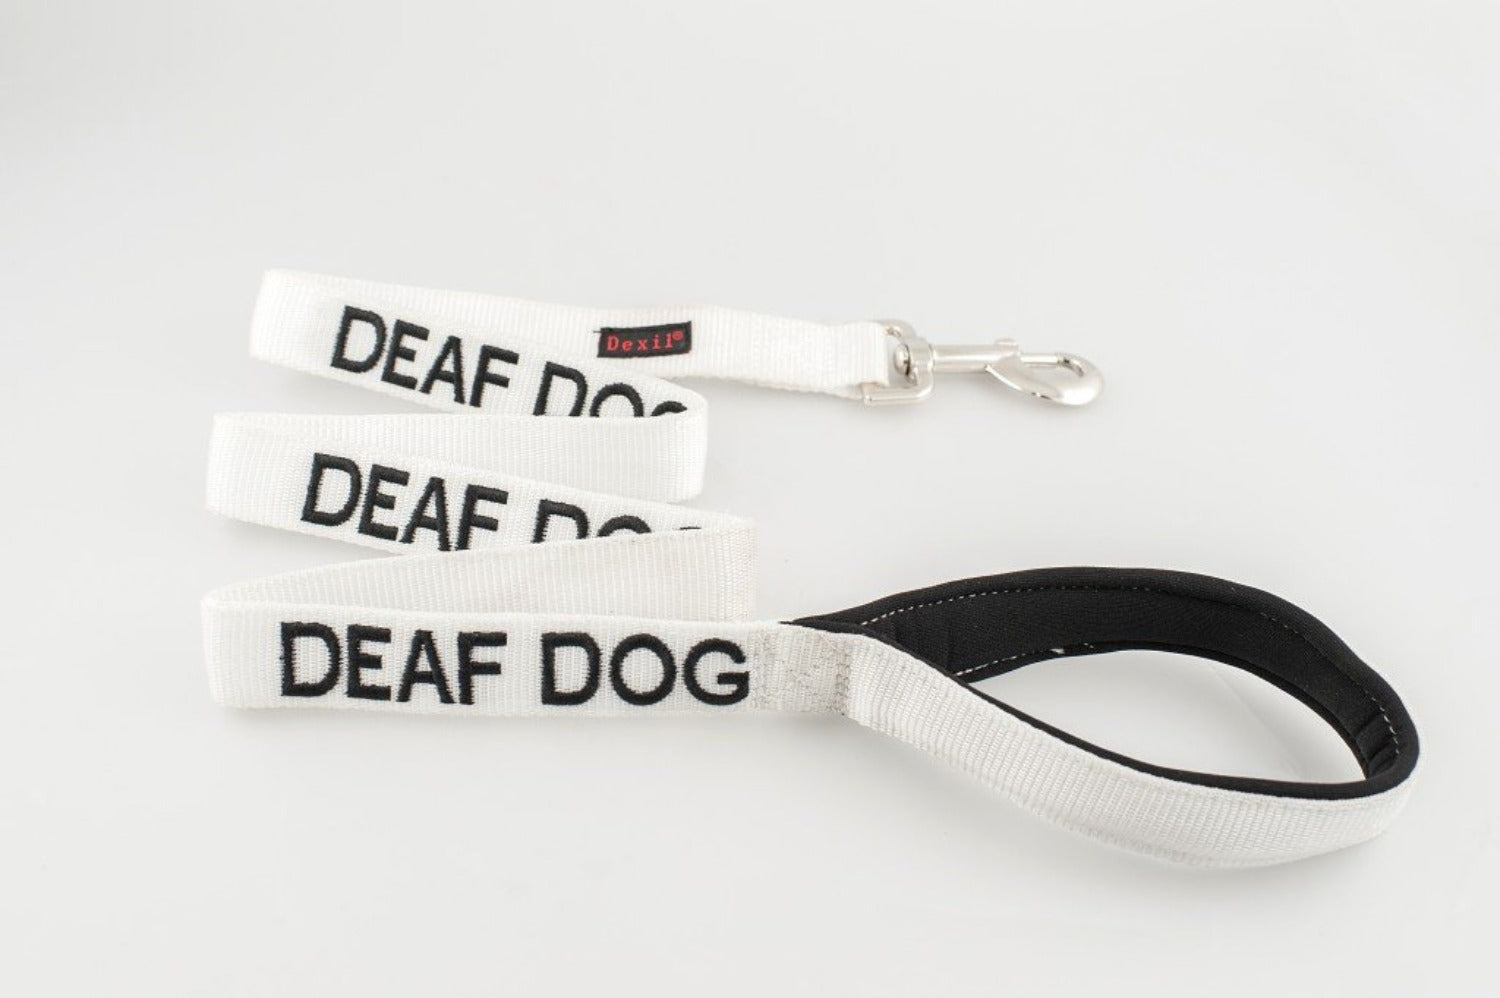 Deaf Dog - Advisory Lead